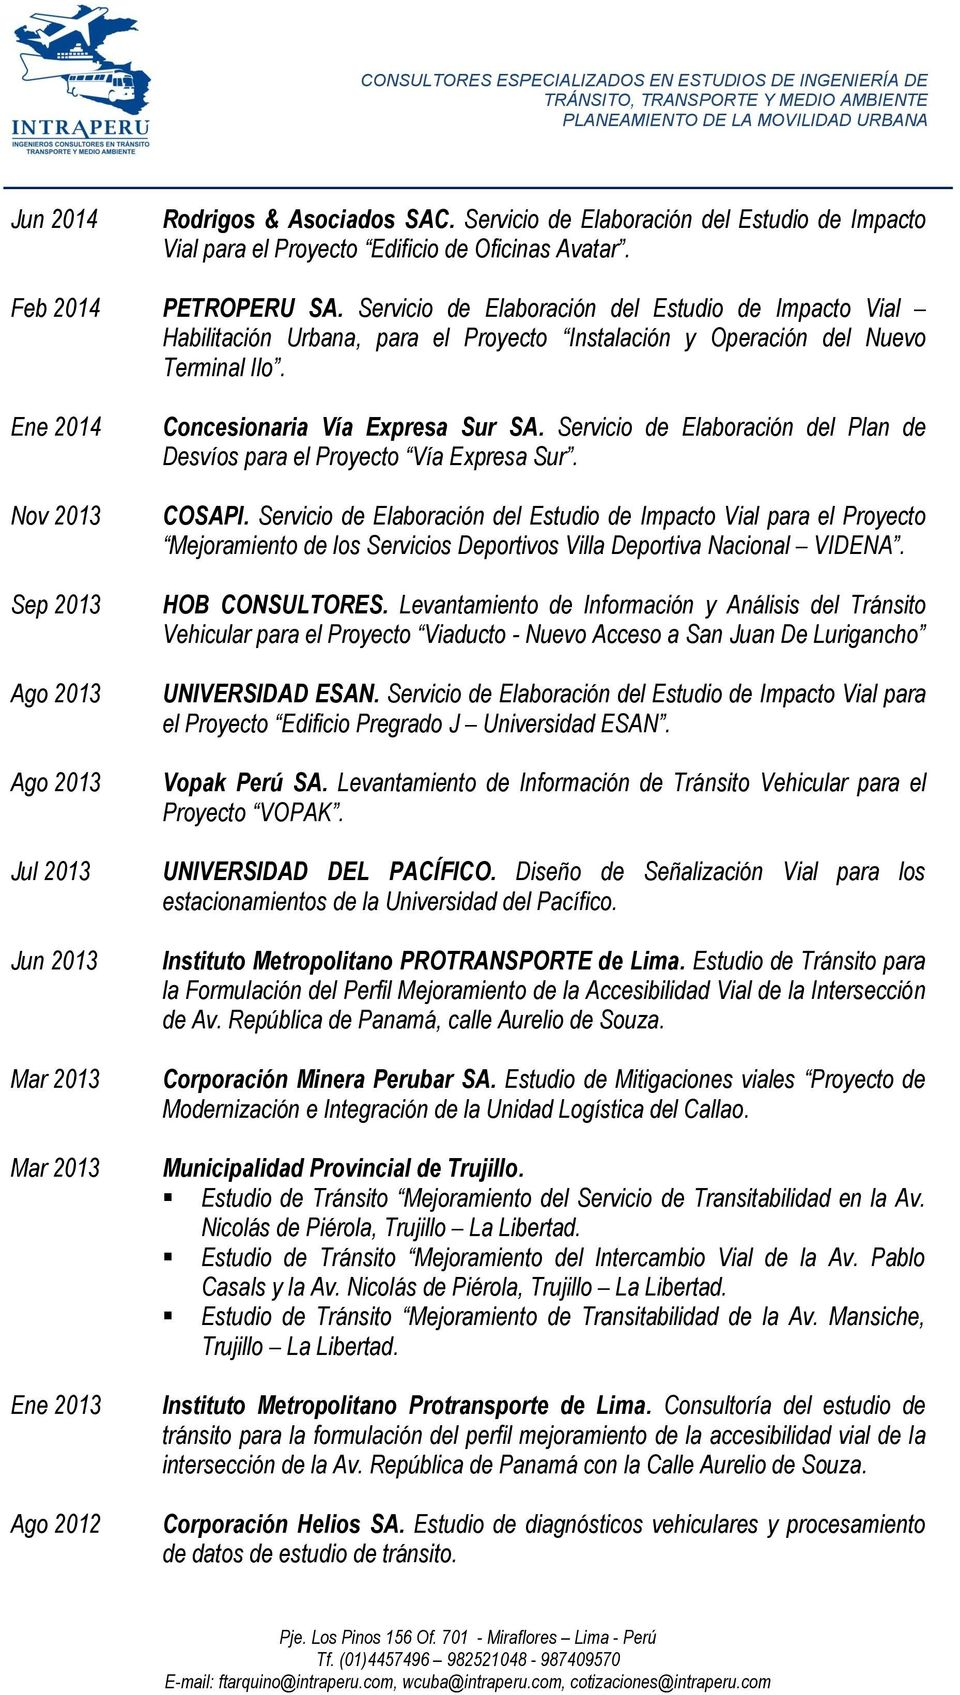 Ene 2014 Nov 2013 Sep 2013 Ago 2013 Ago 2013 Jul 2013 Jun 2013 Mar 2013 Mar 2013 Ene 2013 Ago 2012 Concesionaria Vía Expresa Sur SA.